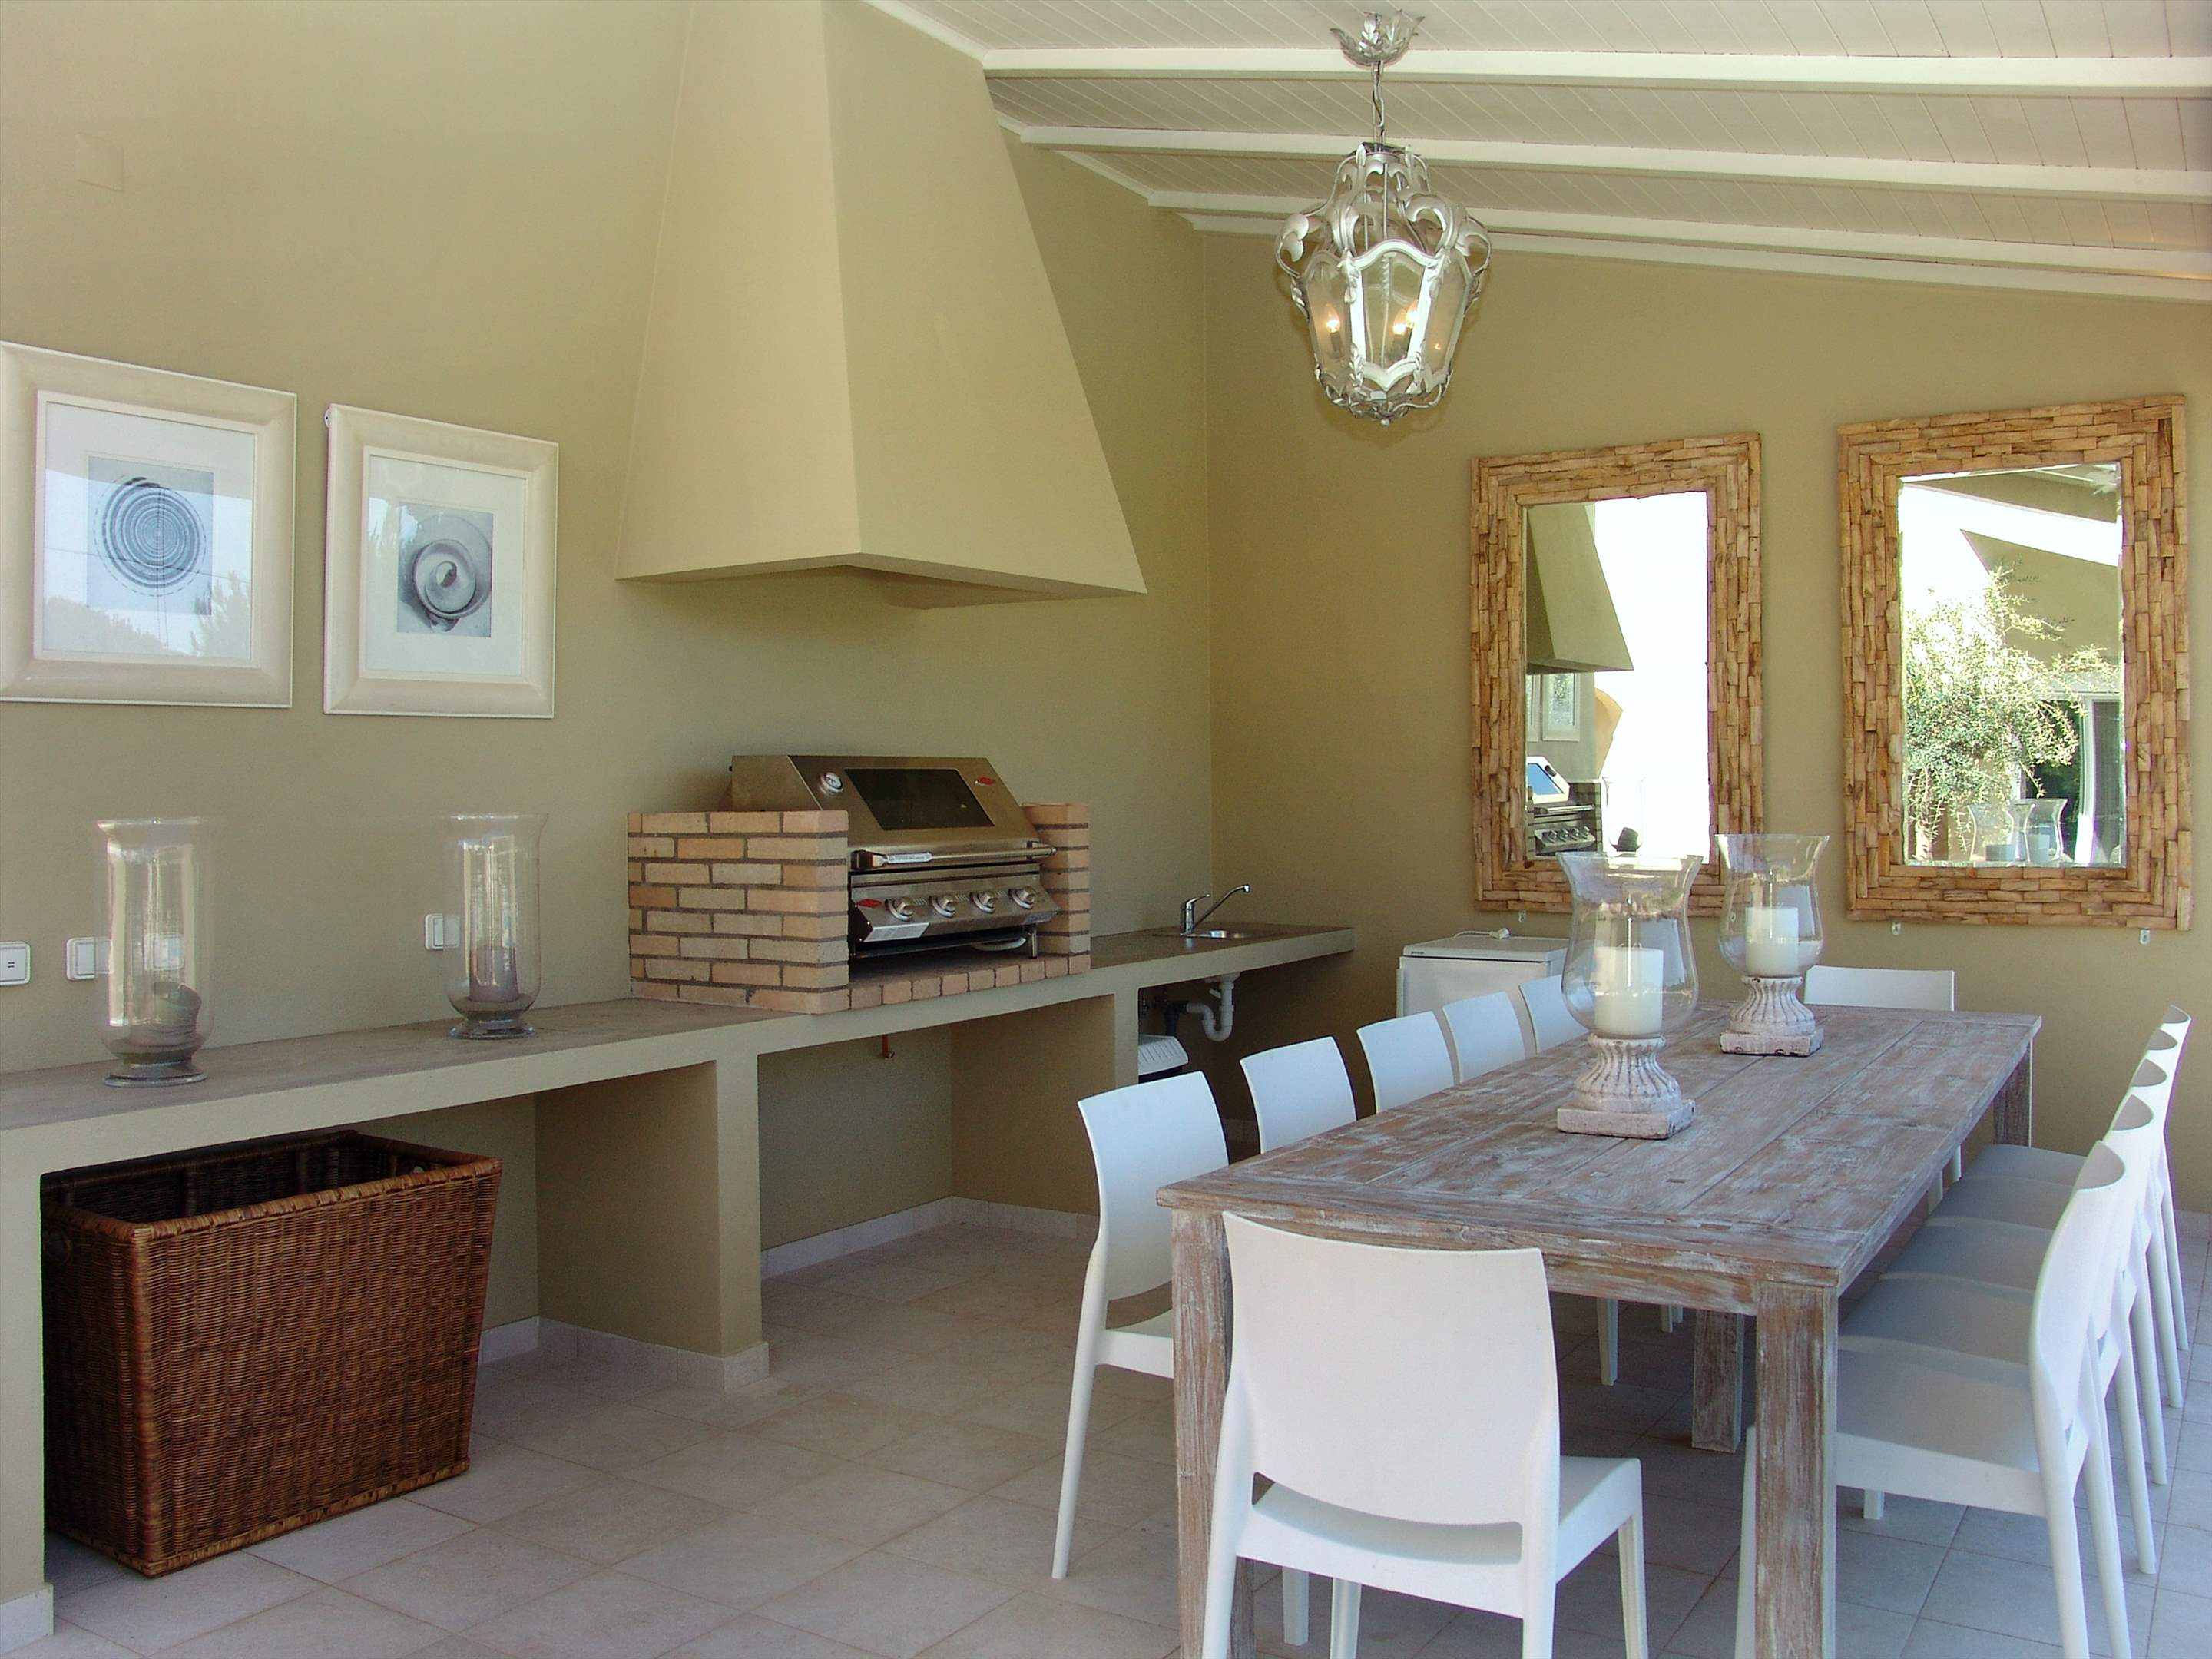 Casa Filomena, Six Bedroom Rate, 6 bedroom villa in Quinta do Lago, Algarve Photo #9